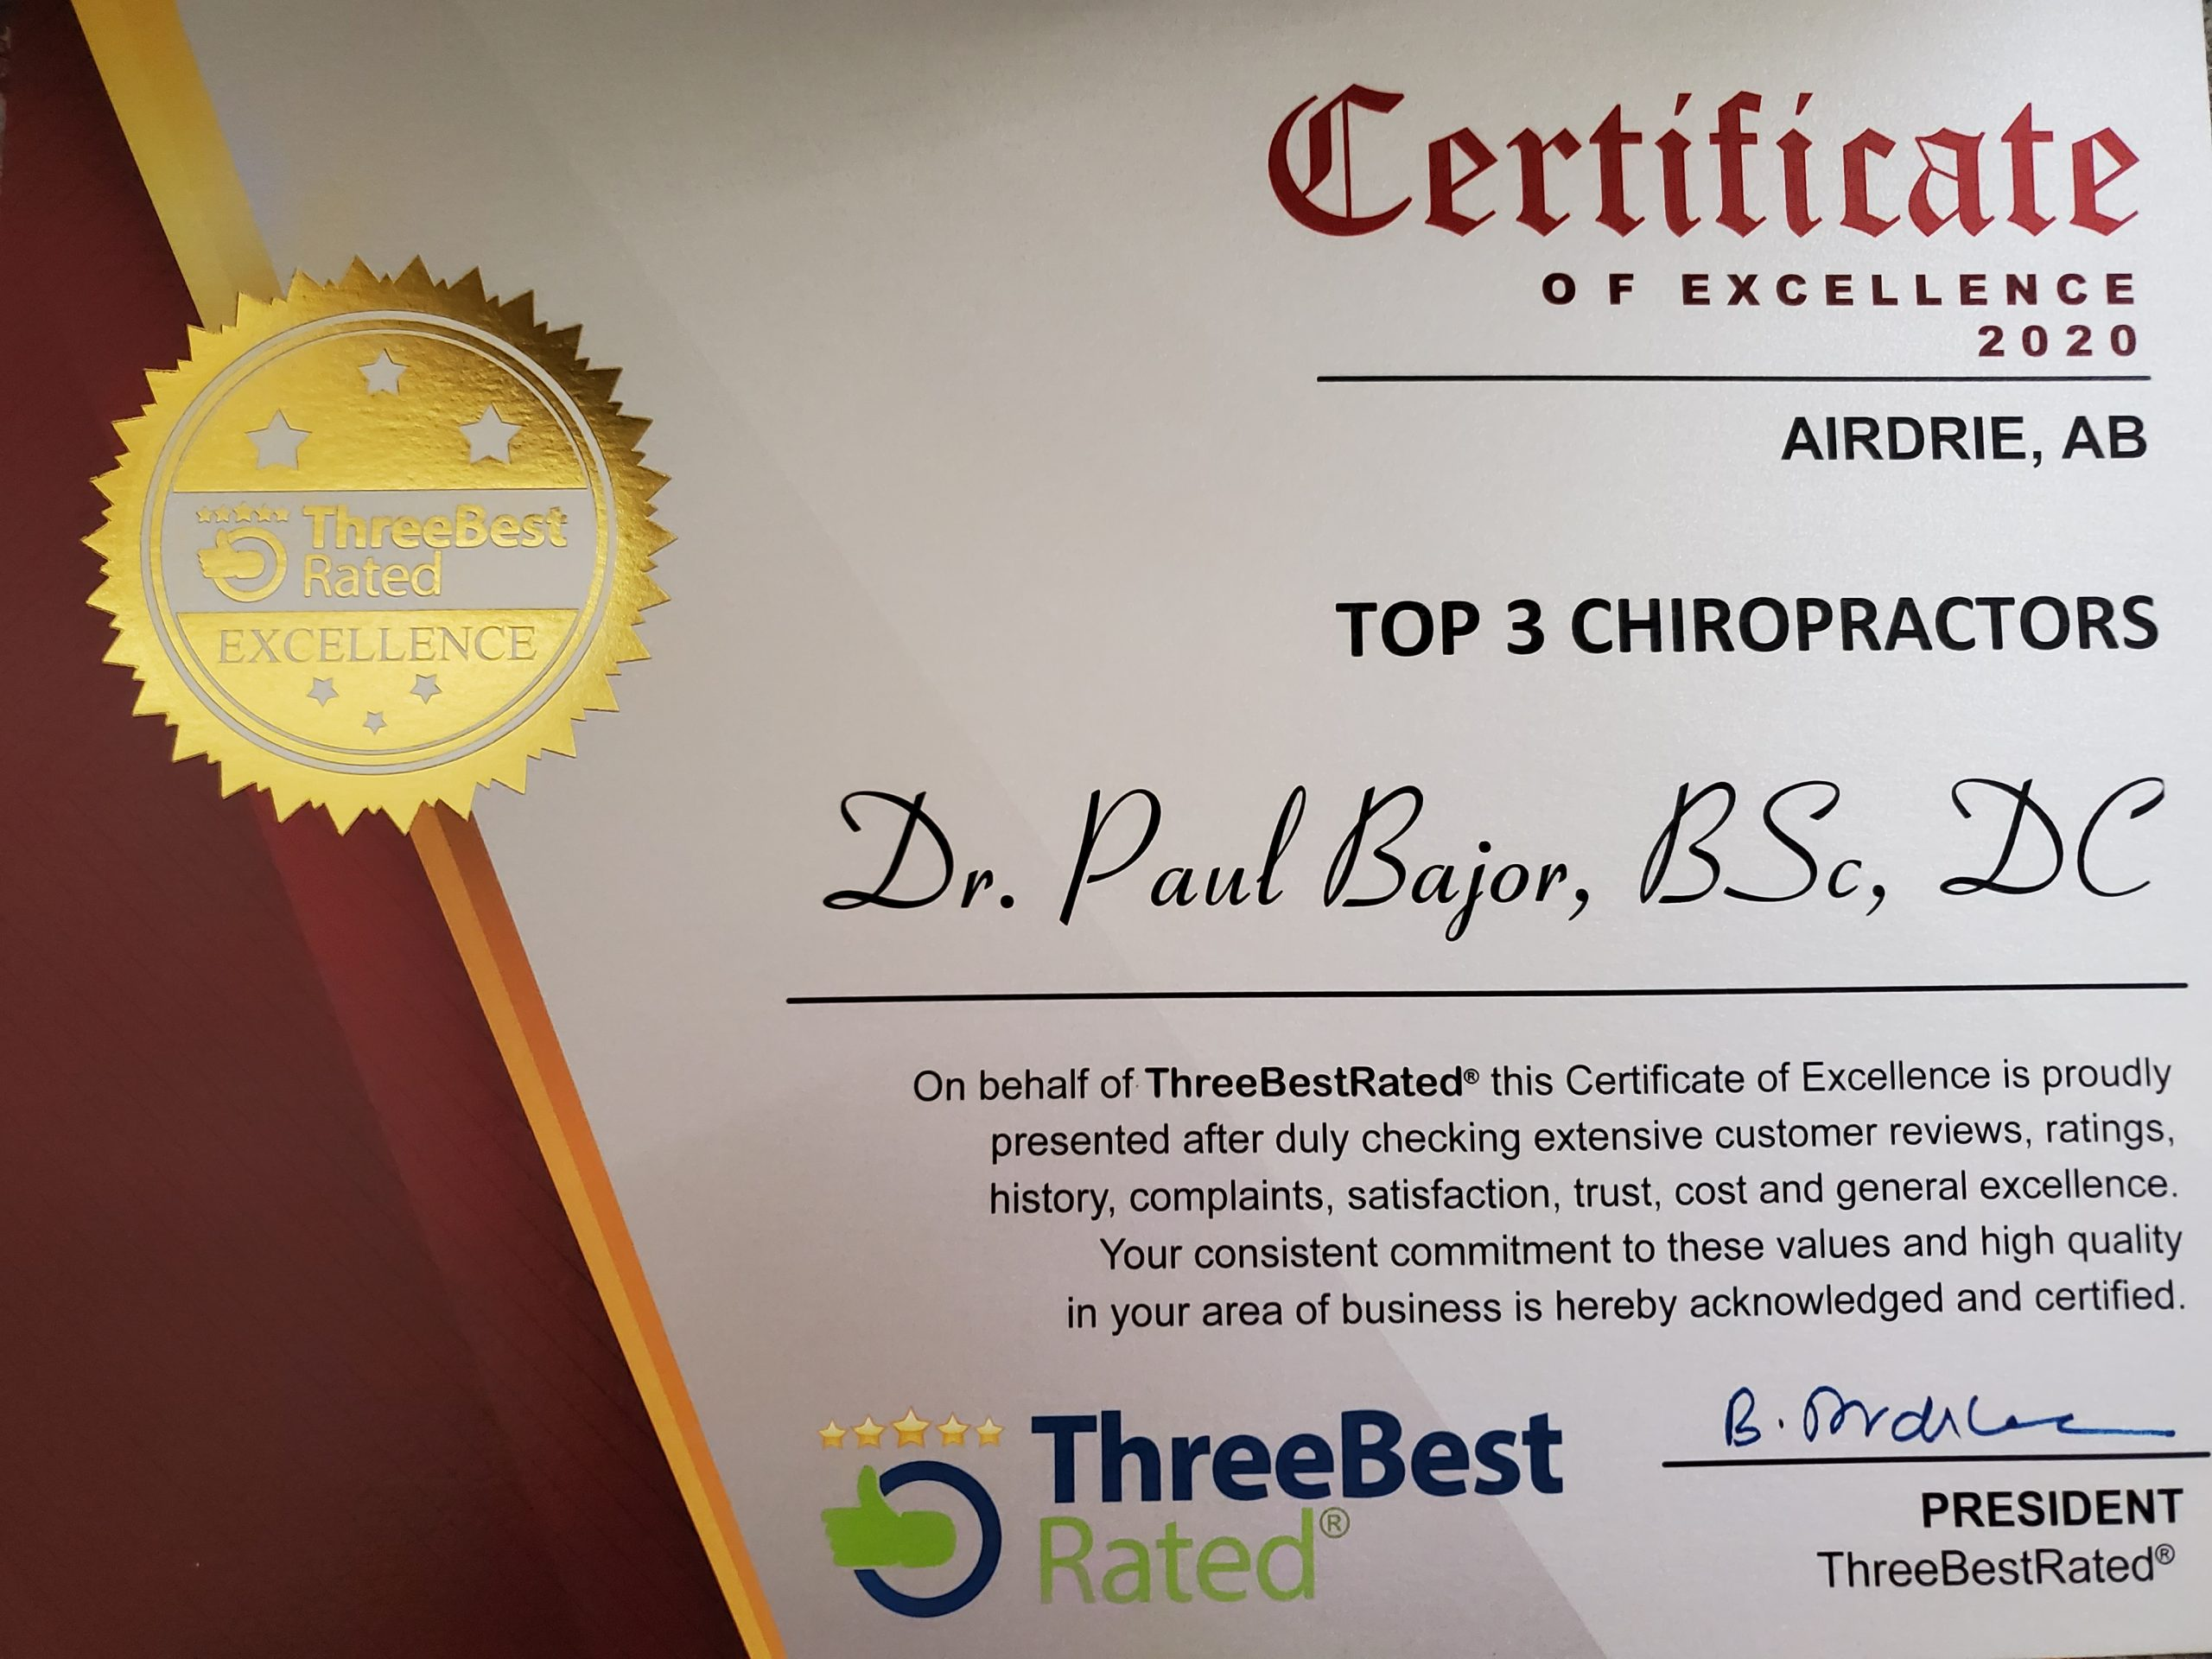 Best Chiropractor in Airdrie